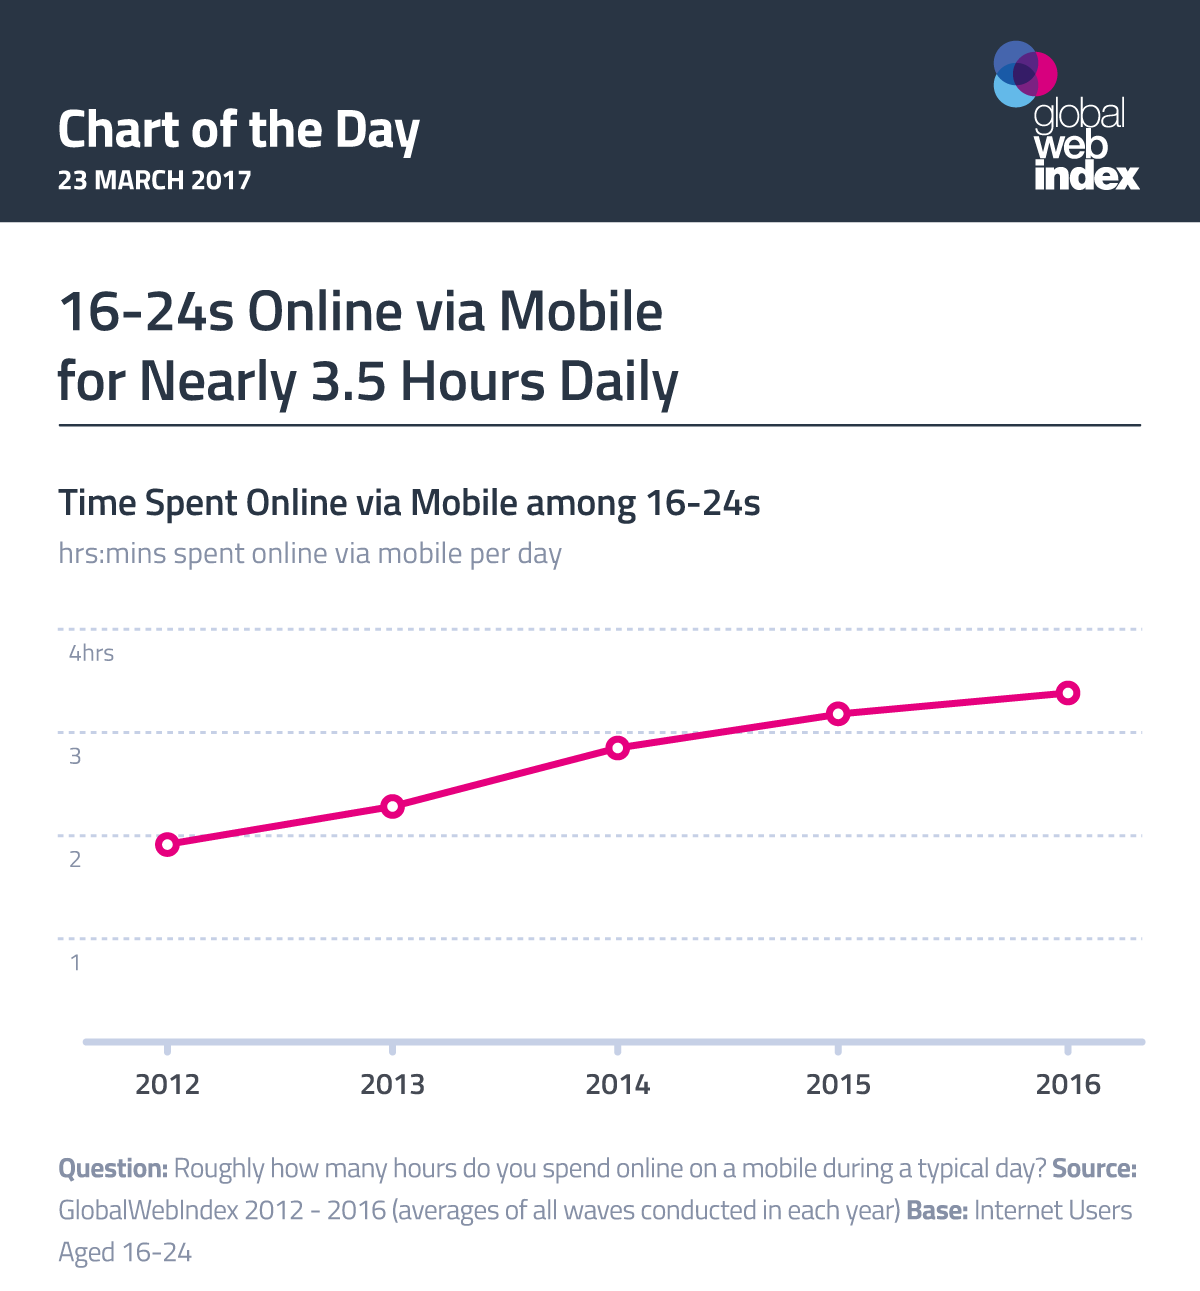 16-24s Online via Mobile for Nearly 3.5 Hours Daily